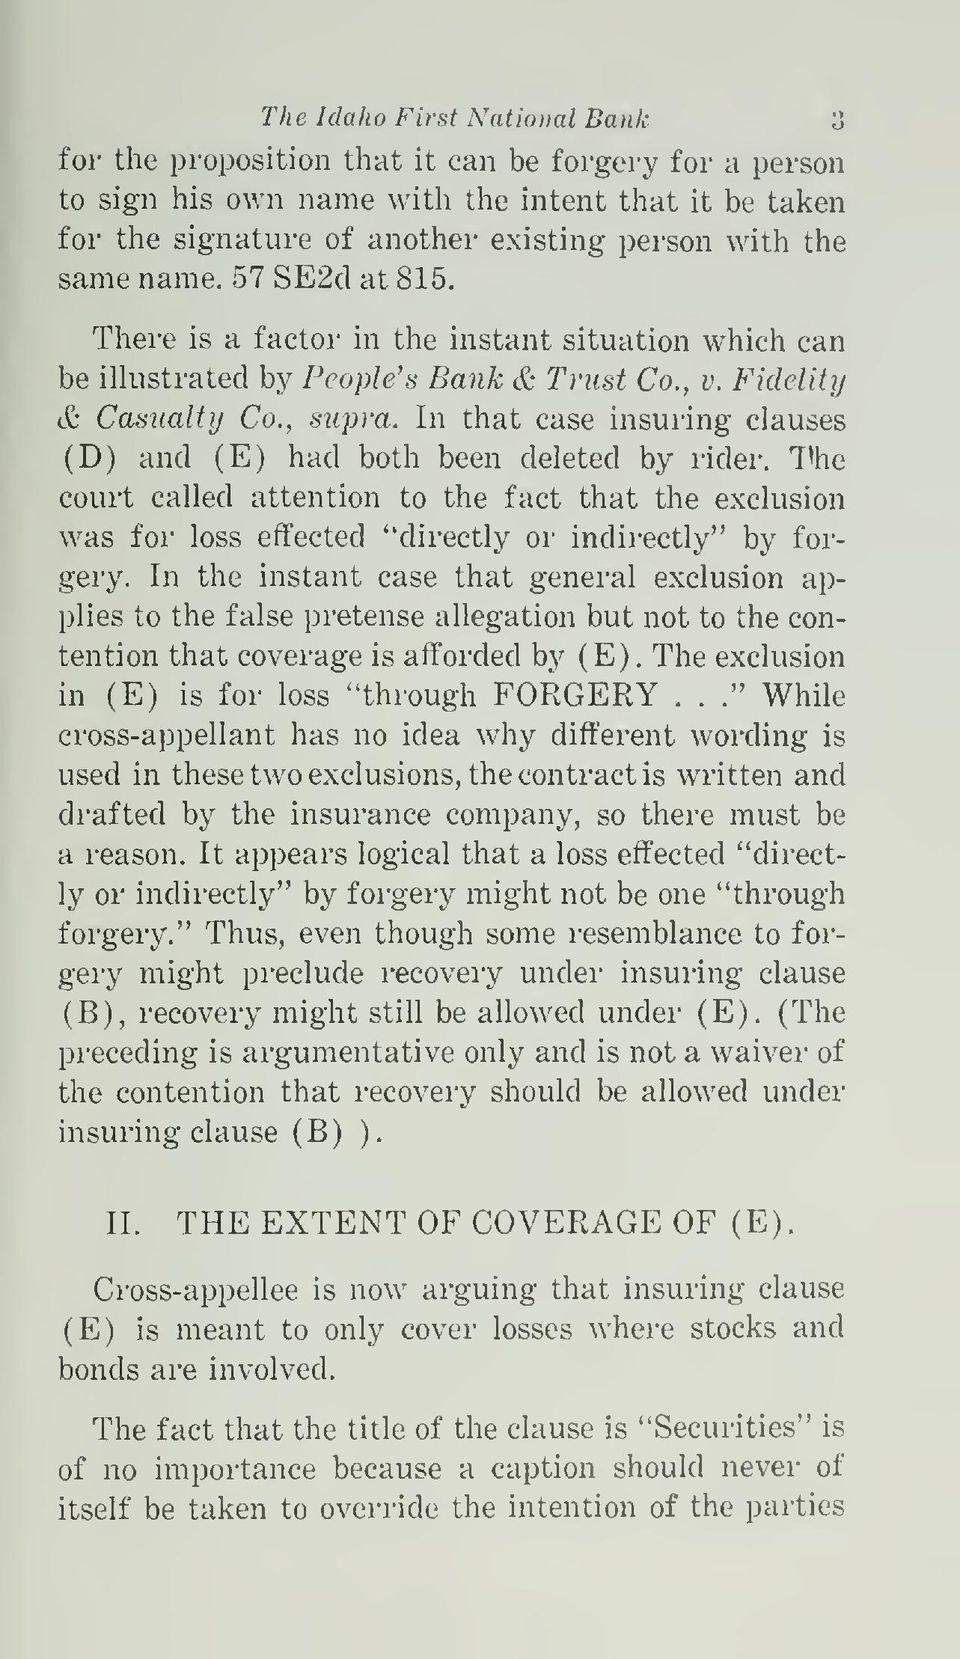 "In that case insuring clauses (D) and (E) had both been deleted by rider. T'he couit called attention to the fact that the exclusion was for loss effected ""directly or indirectly"" by forgery."